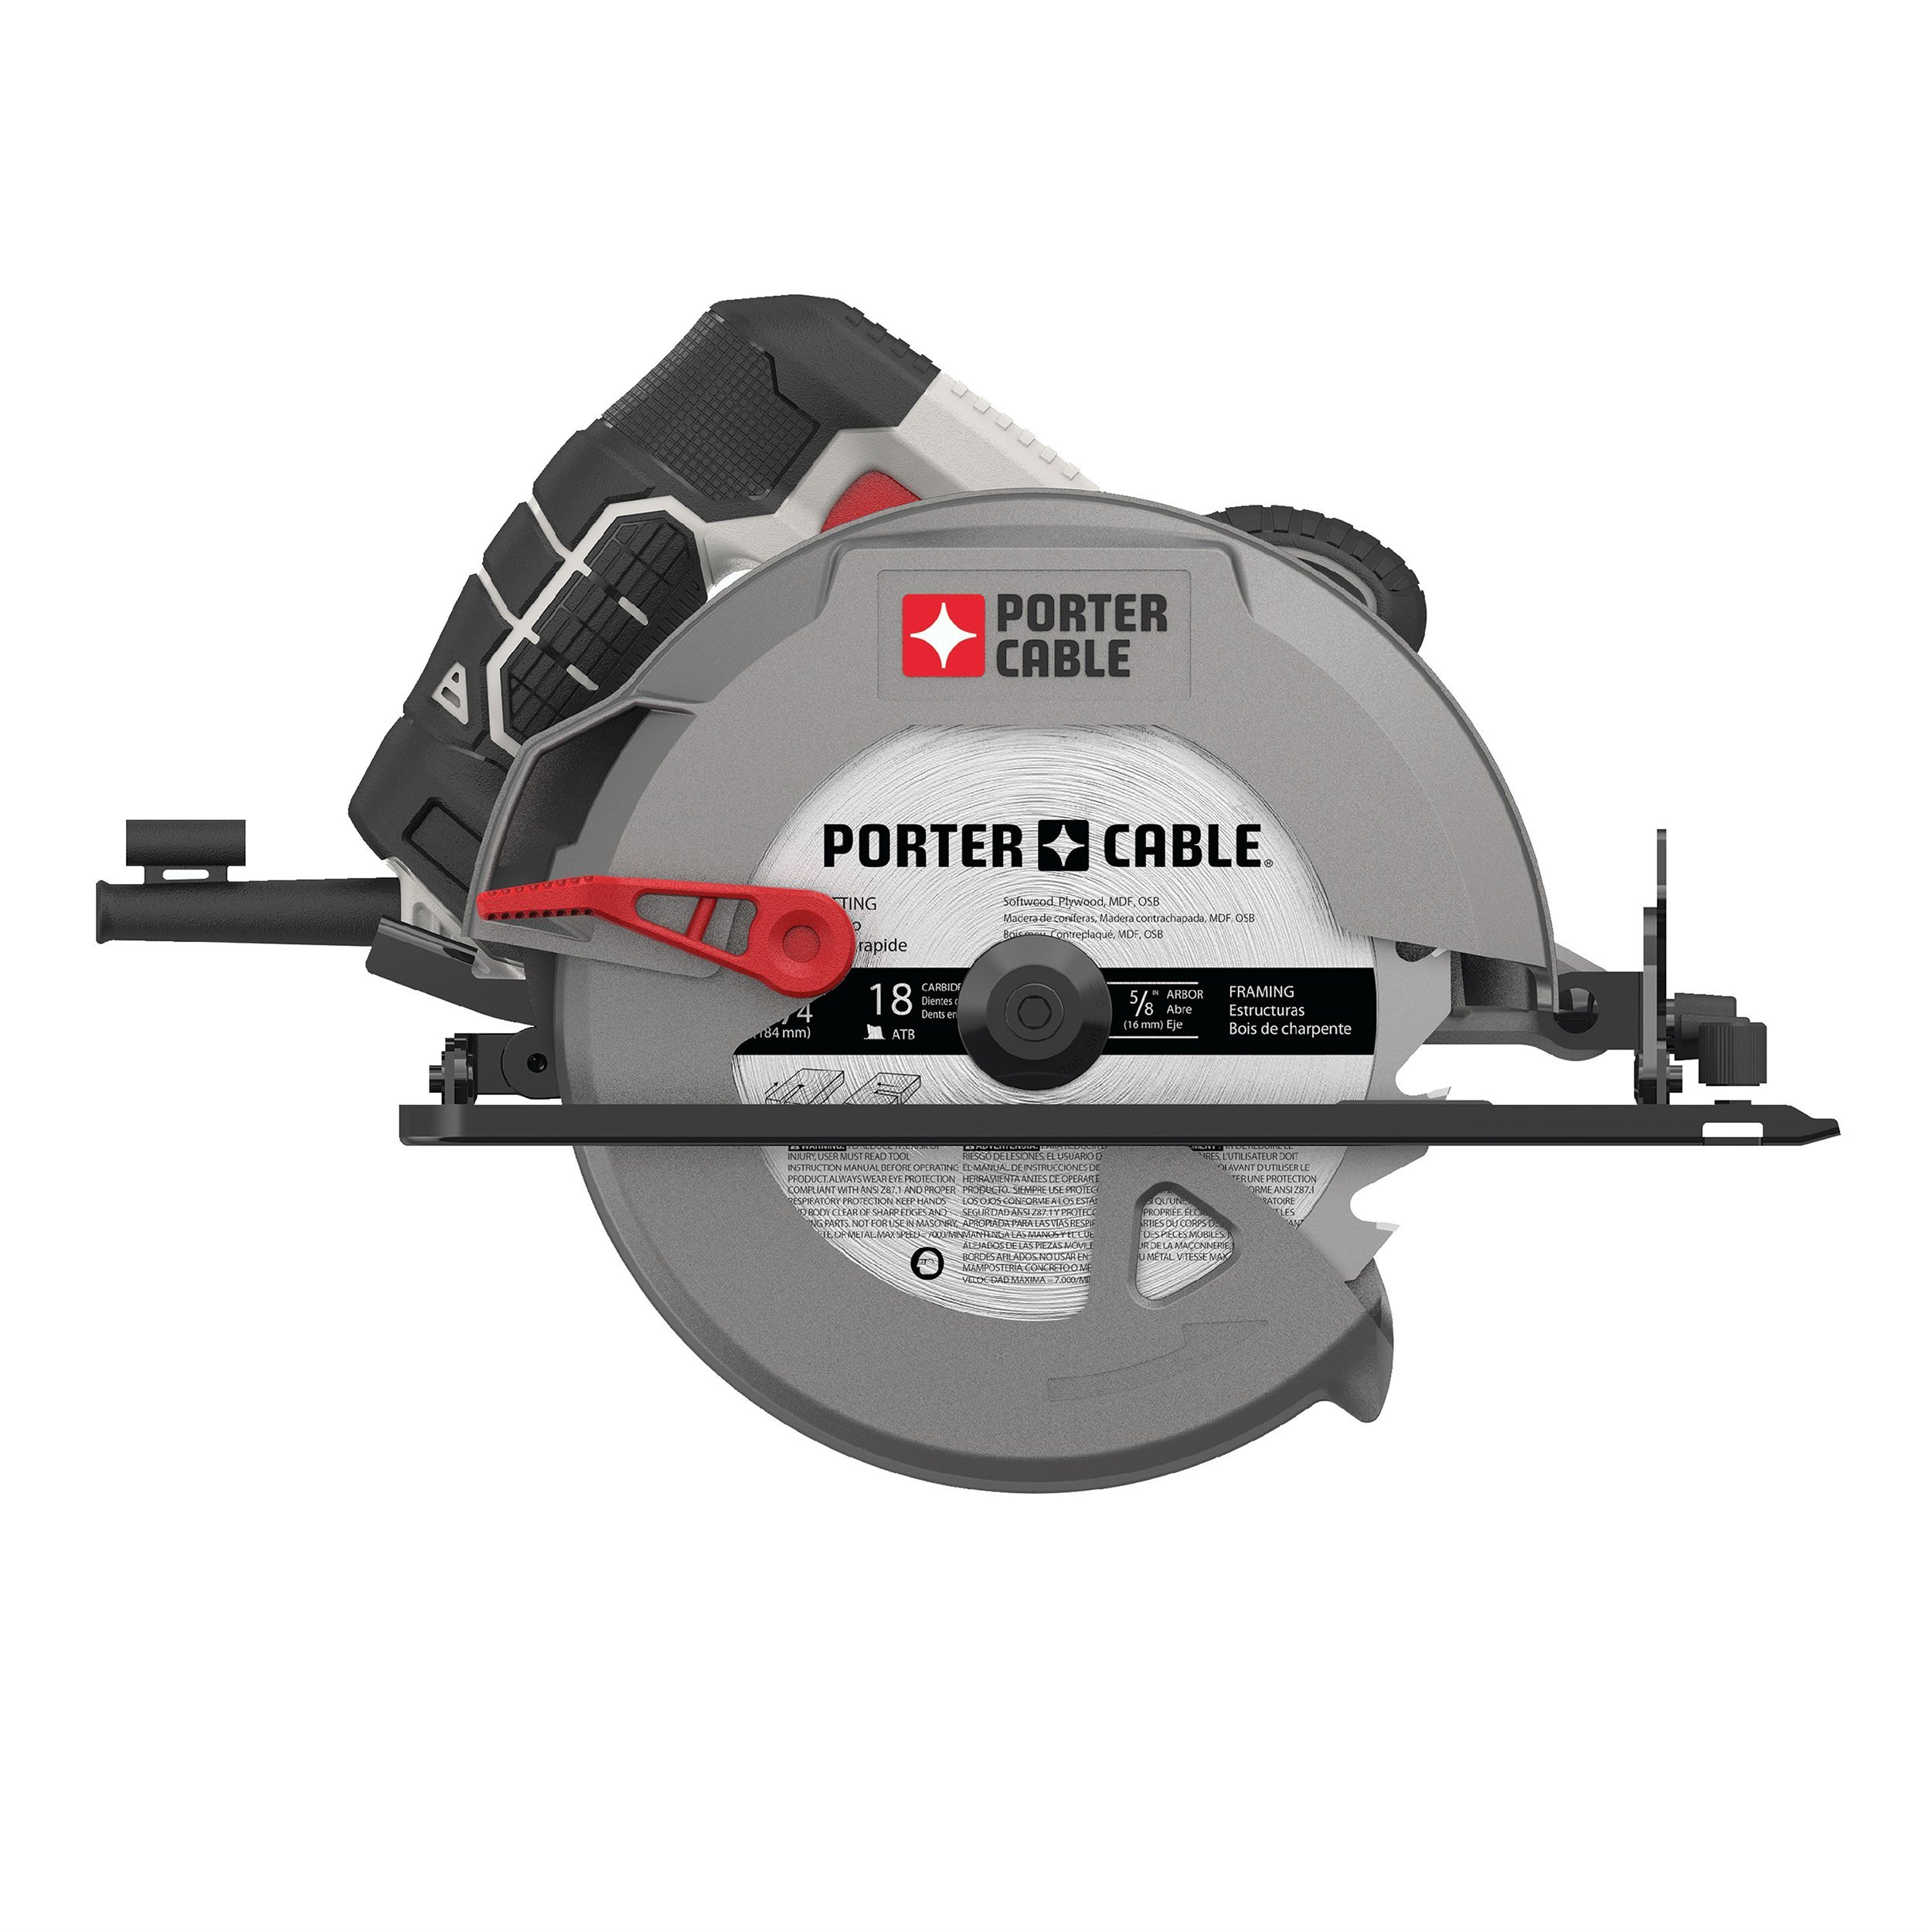 Porter Cable 15-Amp Corded Circular Saw